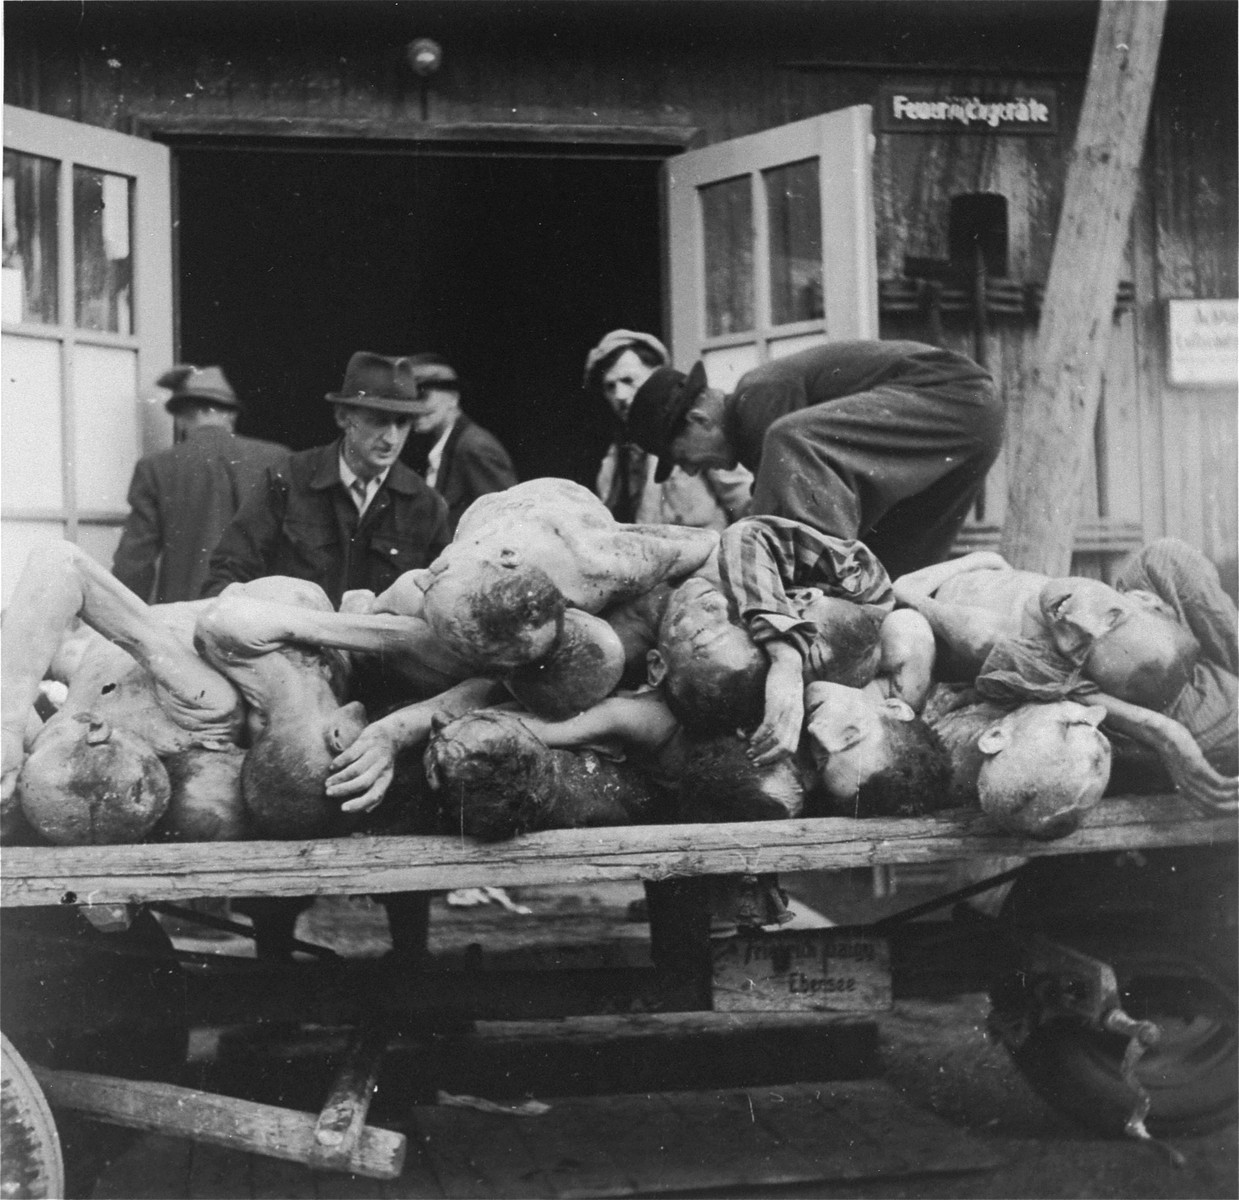 Austrian civilians load the bodies of Ebensee prisoners onto a cart for burial.